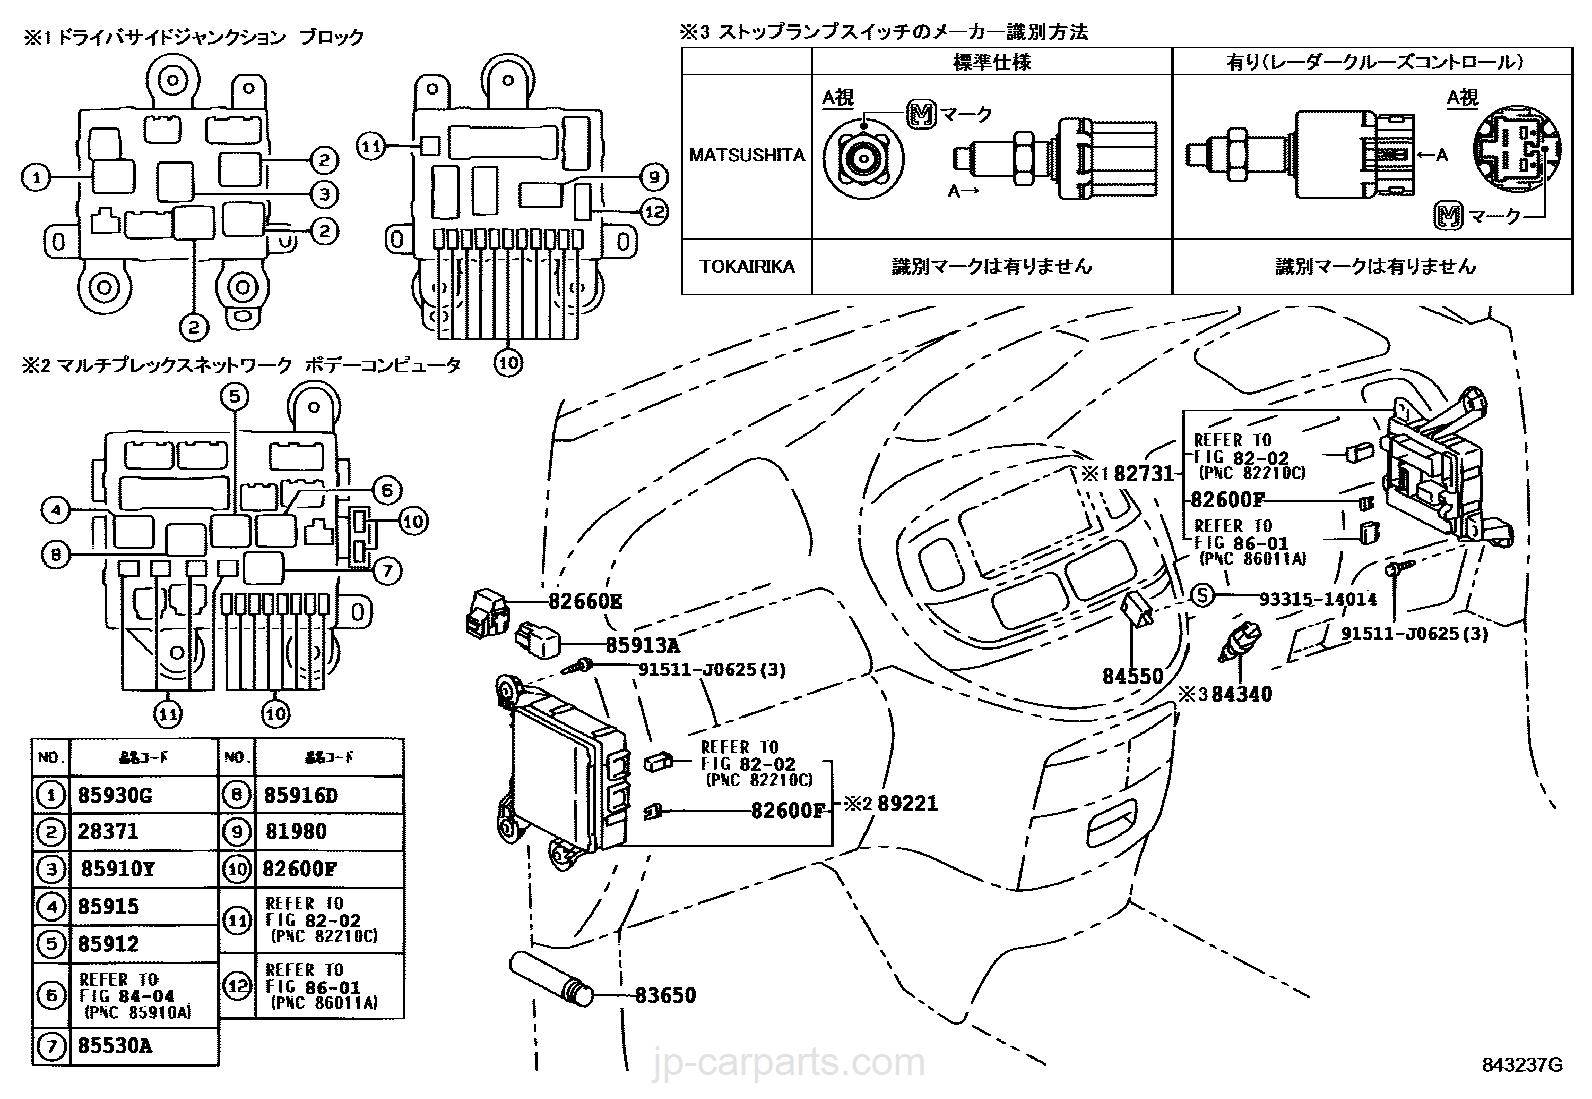 Toyota Estima Fuse Box Layout In English : 40 Wiring